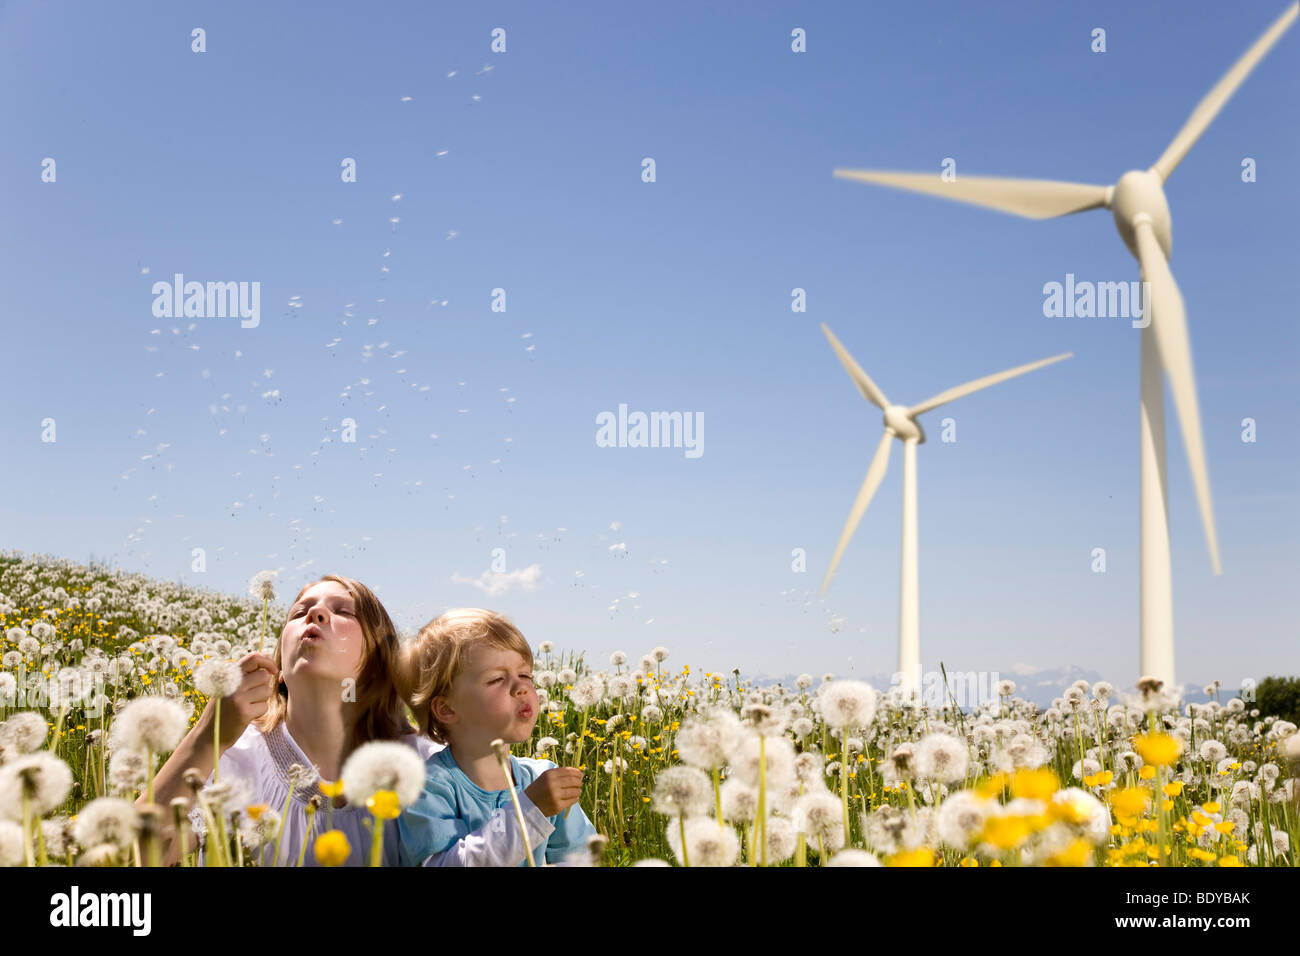 Girl and boy at wind turbine - Stock Image